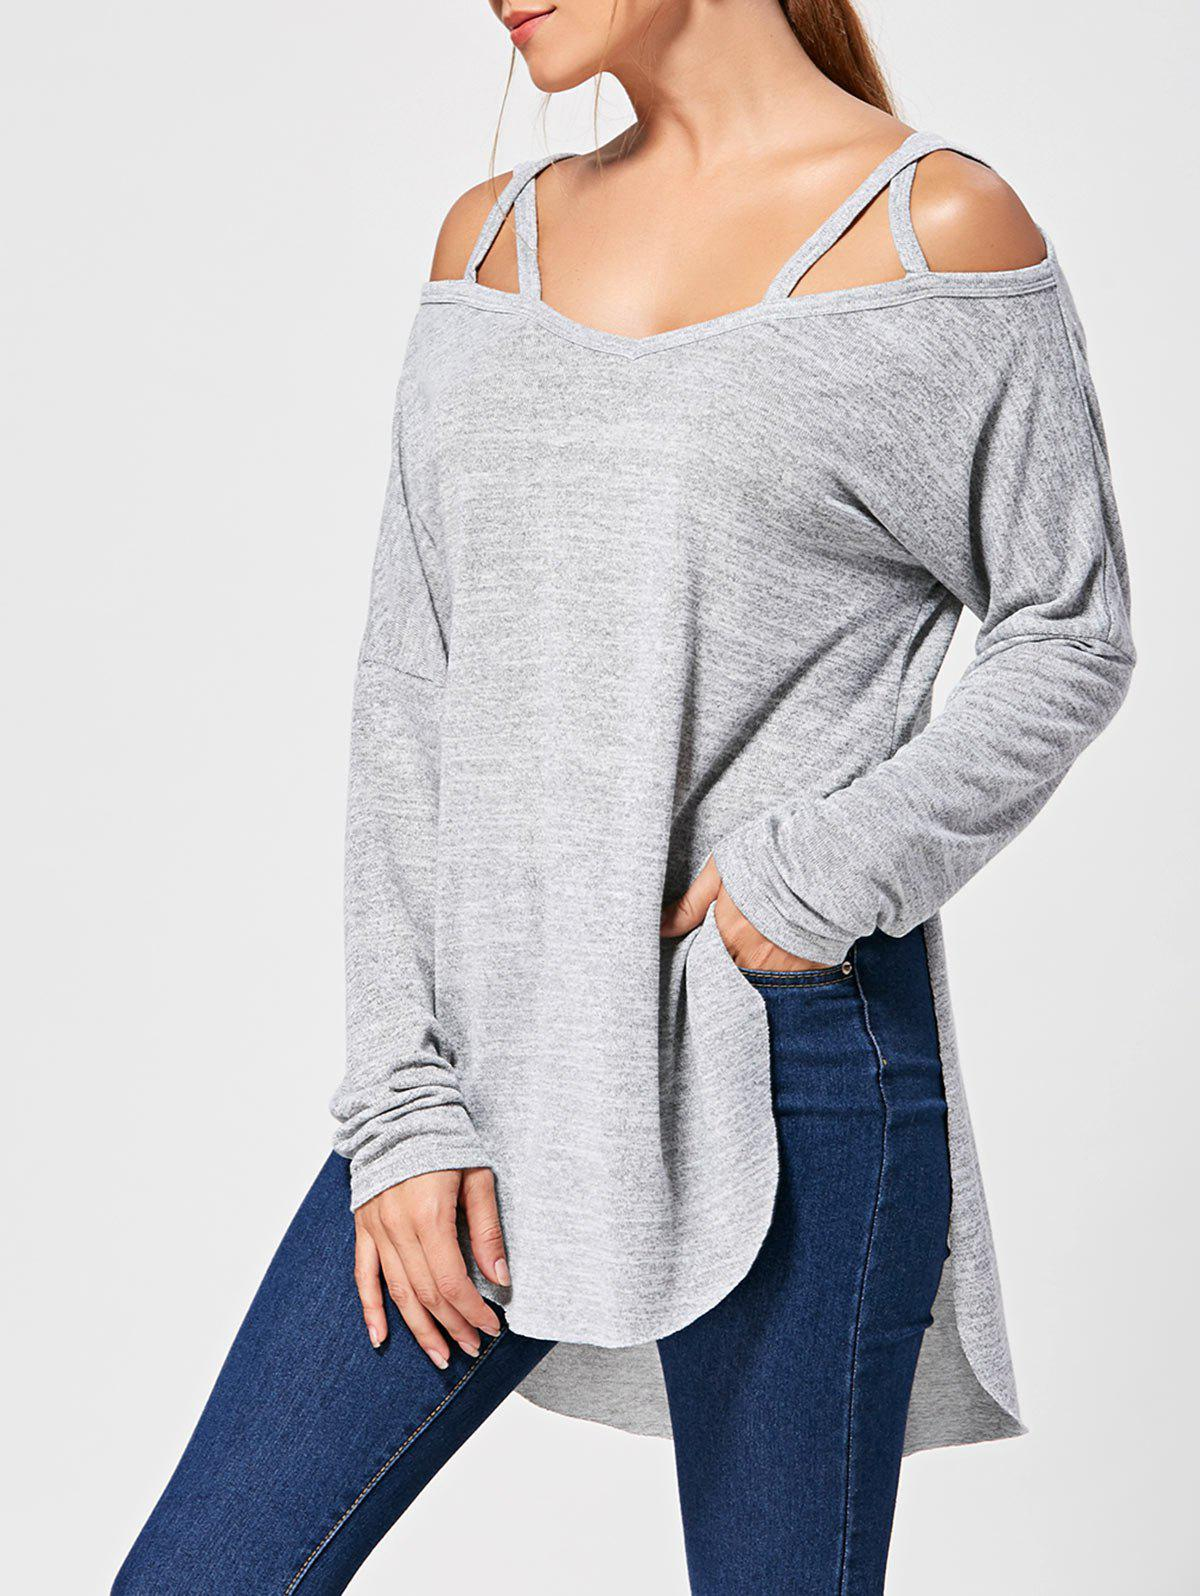 Long Sleeve Lattice High Low Top - GRAY L